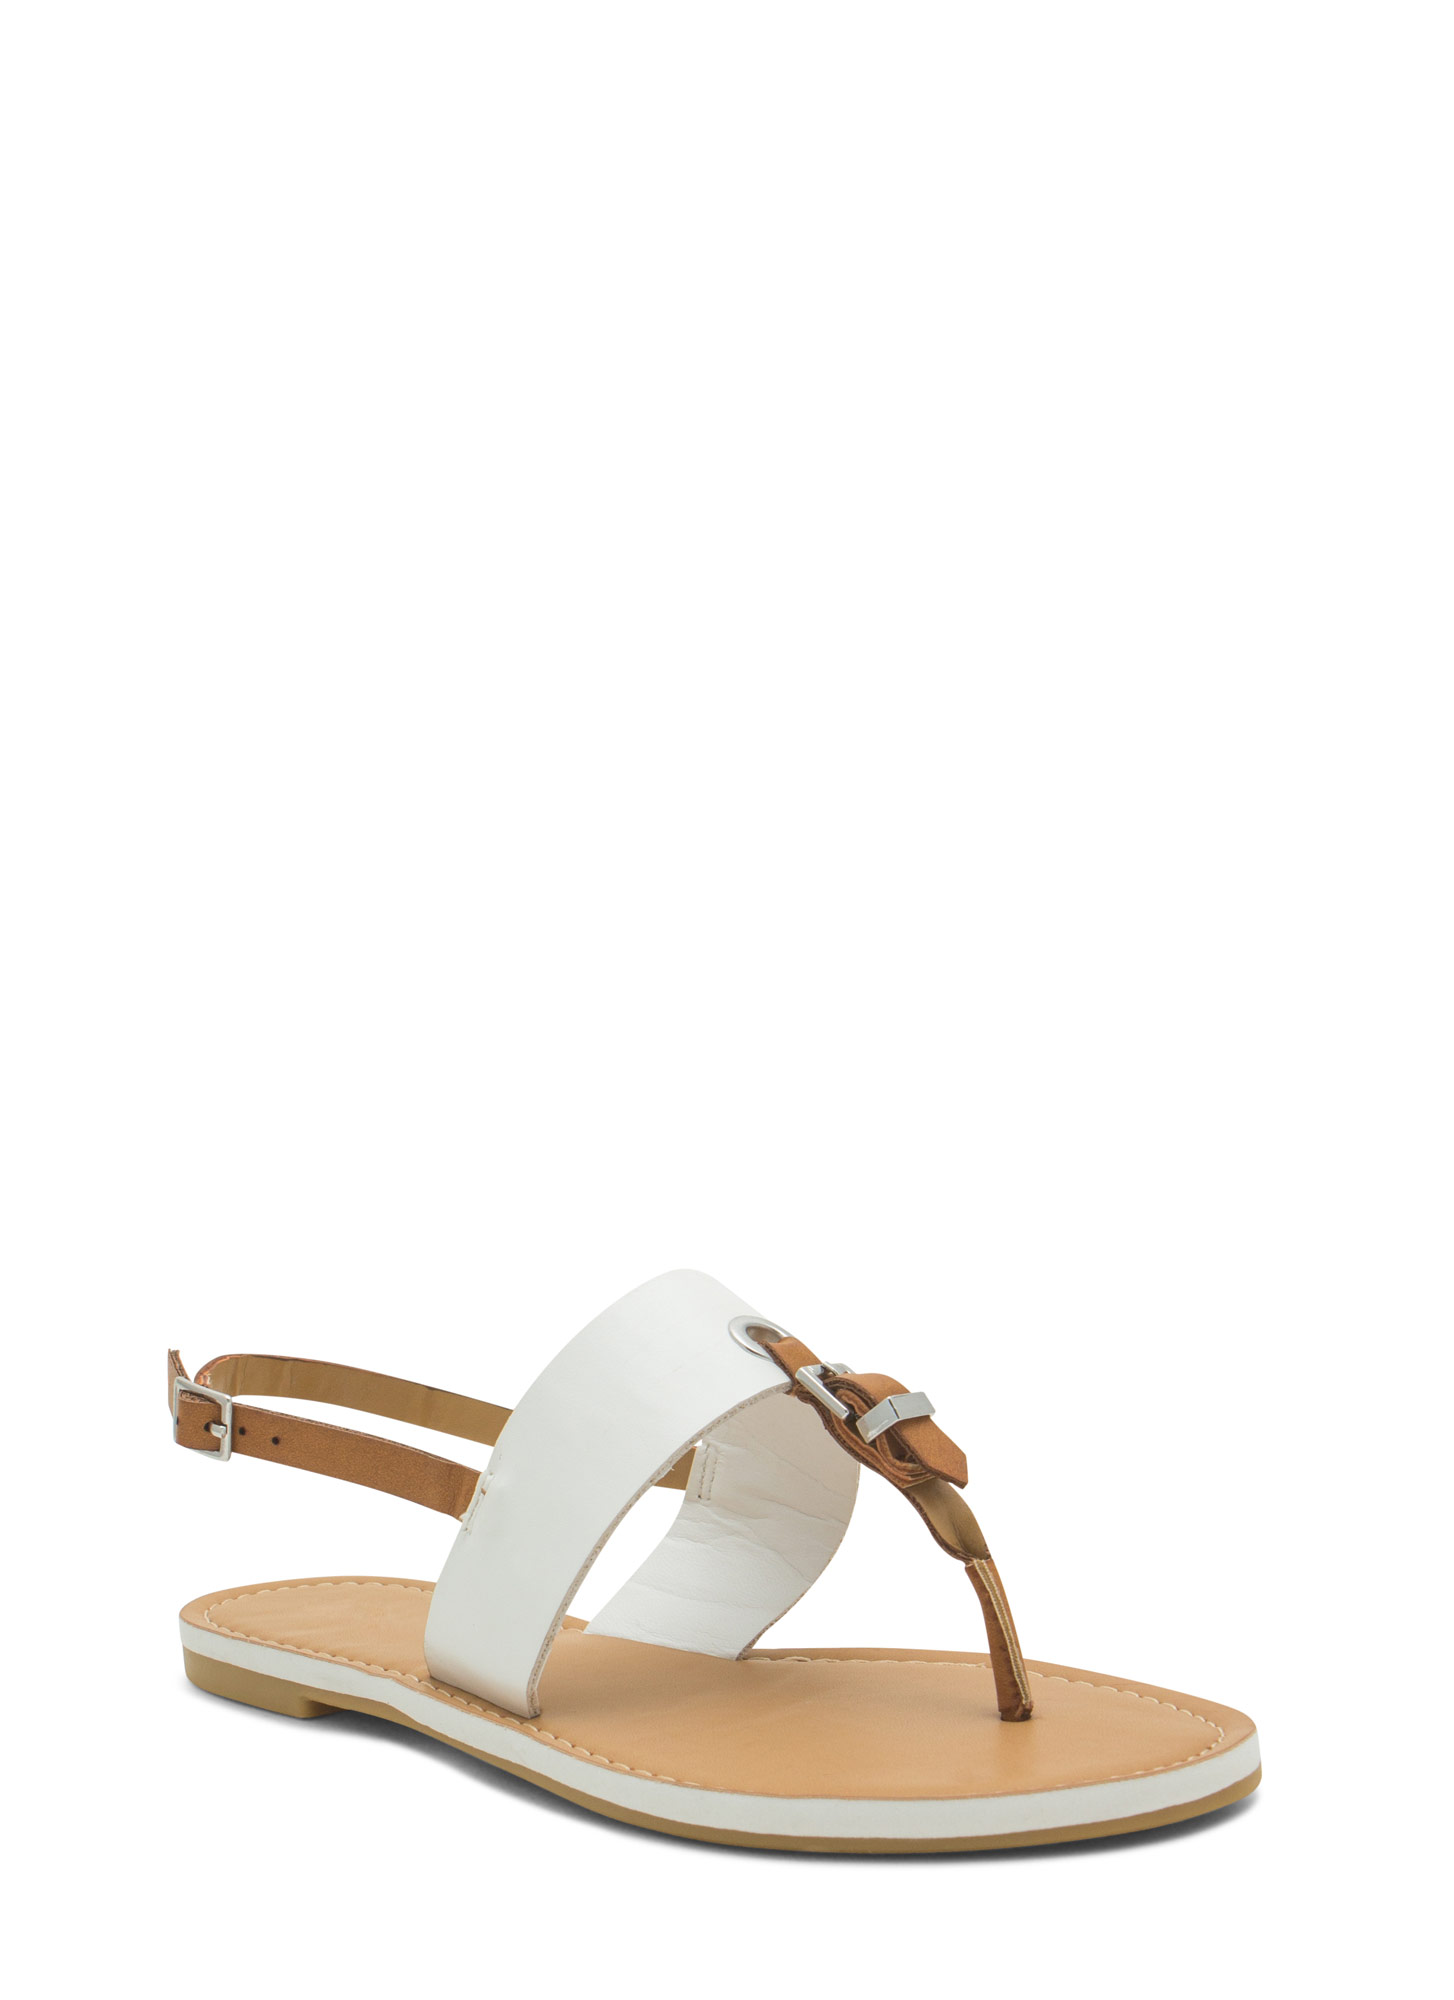 All Buckled In Faux Leather Thong Sandals WHITE